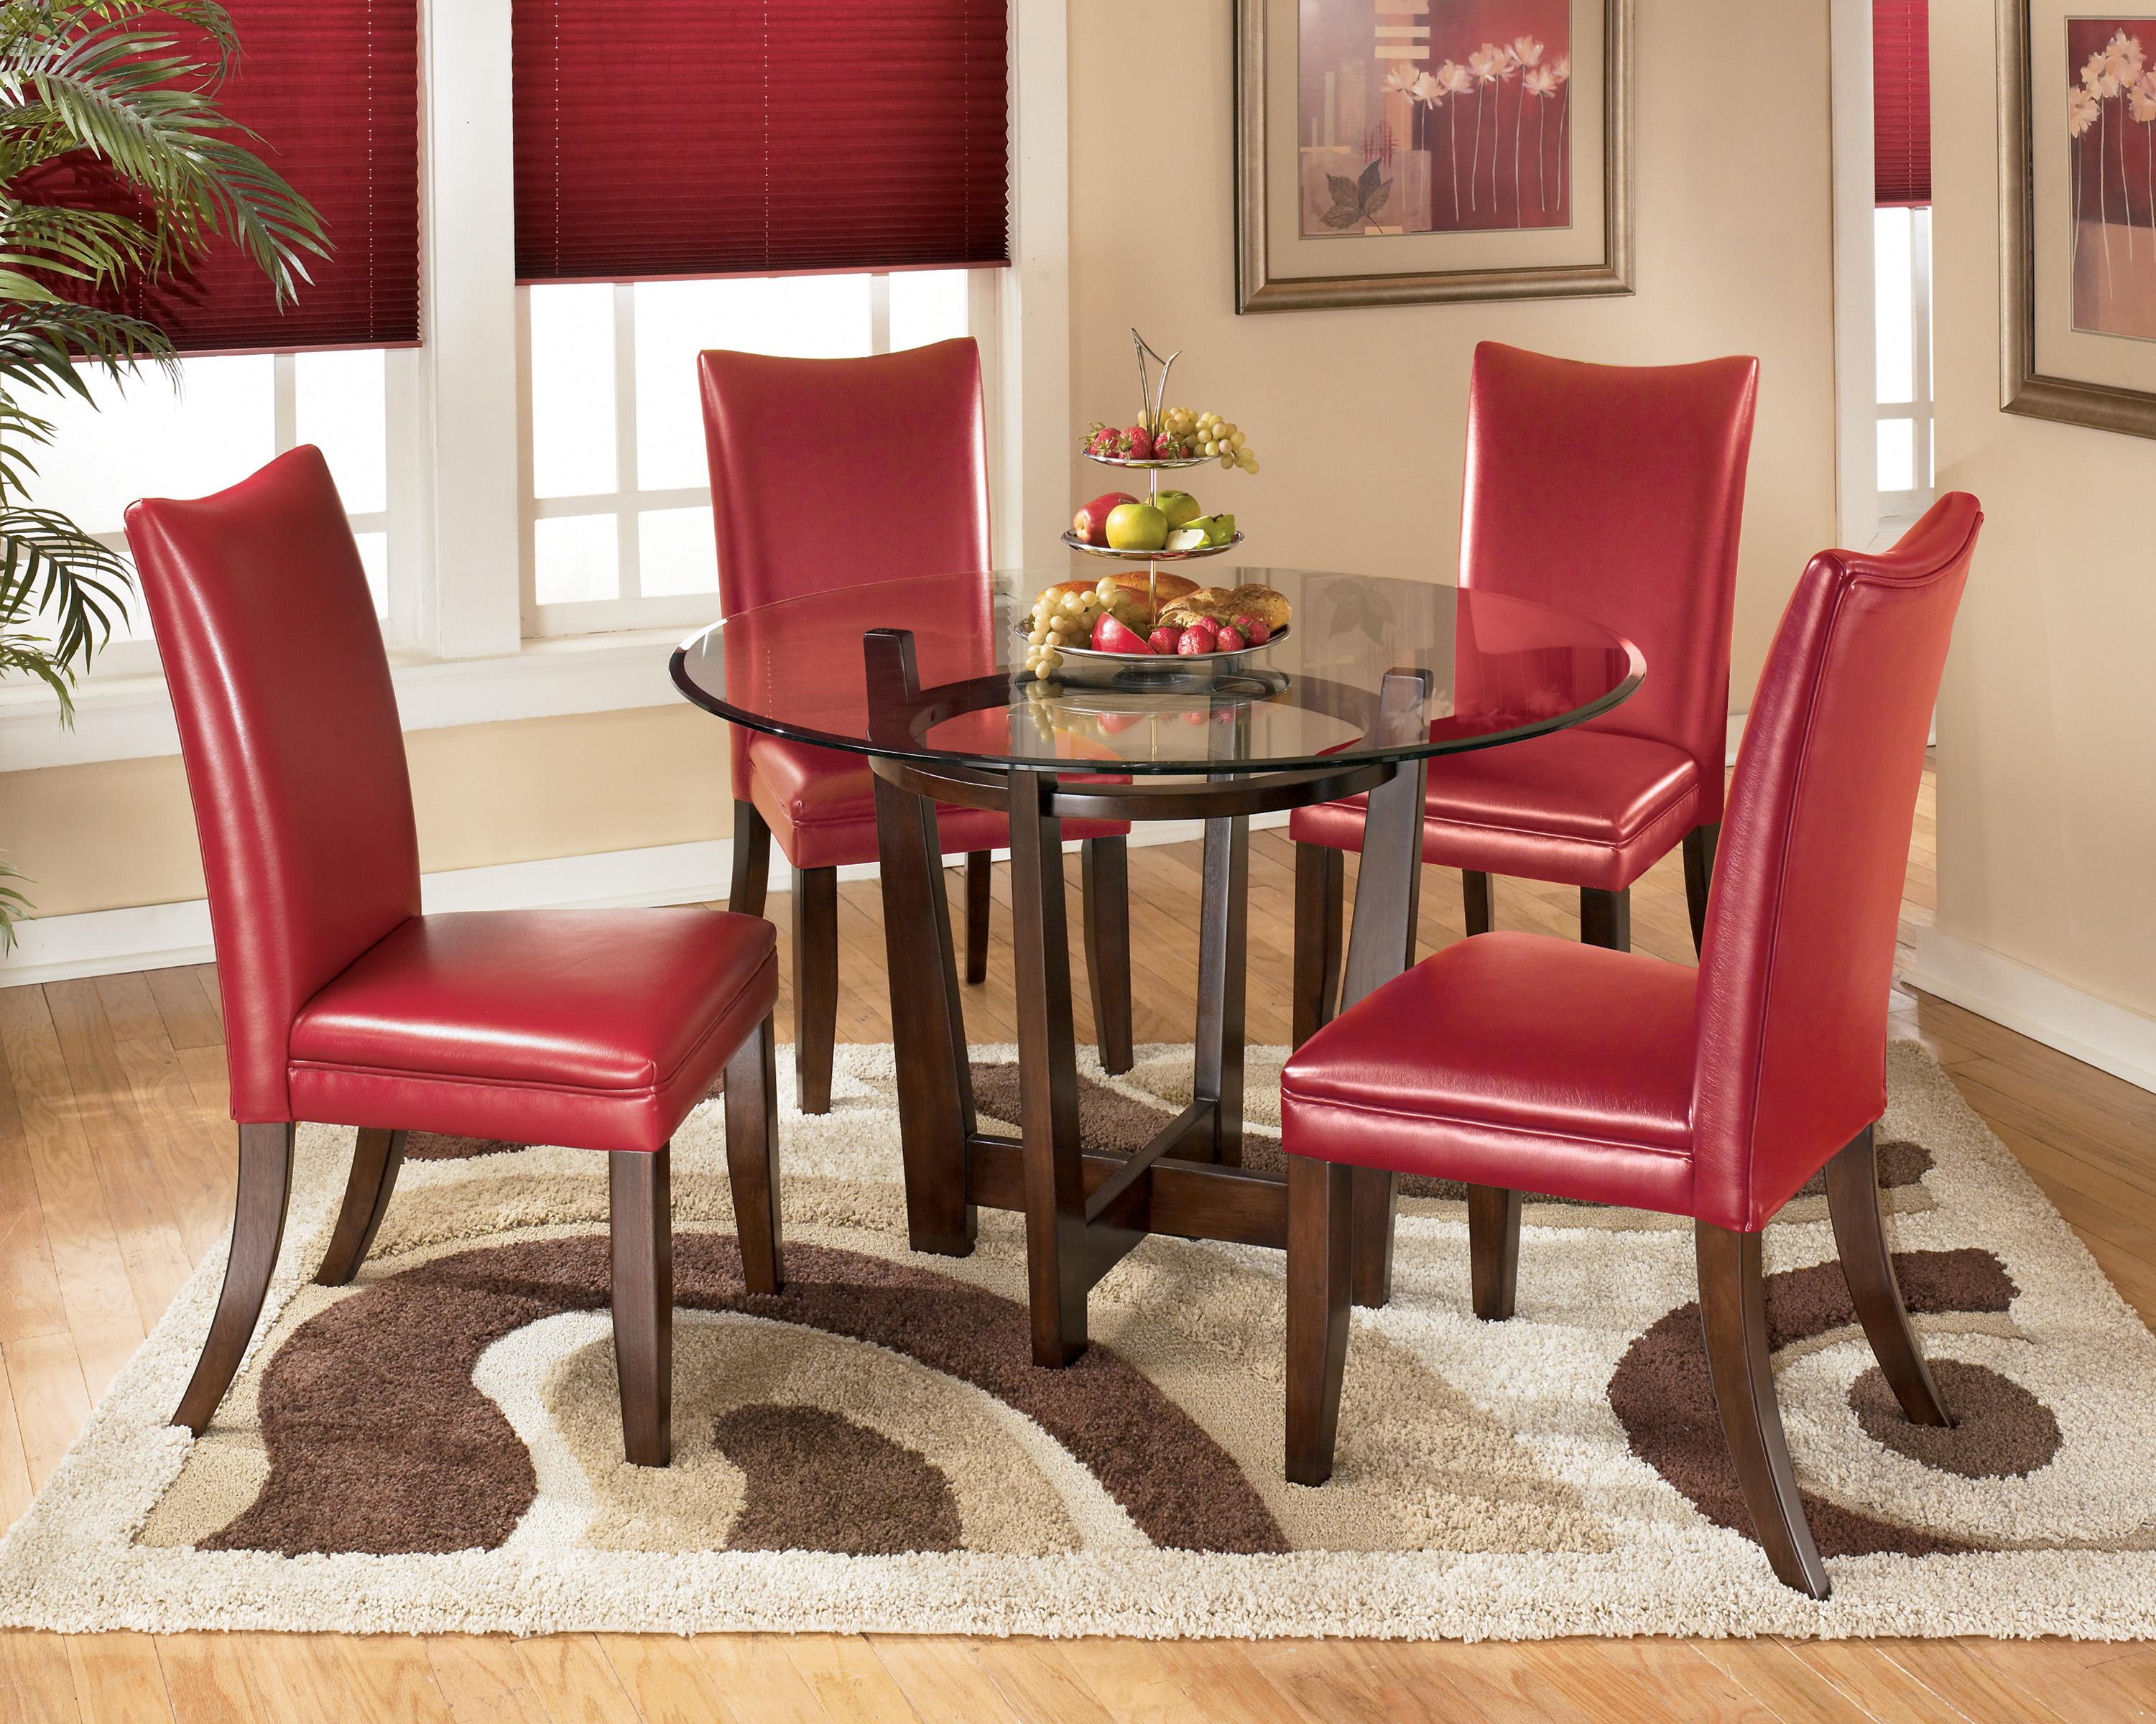 Signature Design By Ashley Charrell 5 Piece Round Dining Table Set With Red Chairs Northeast Factory Direct Dining 5 Piece Set